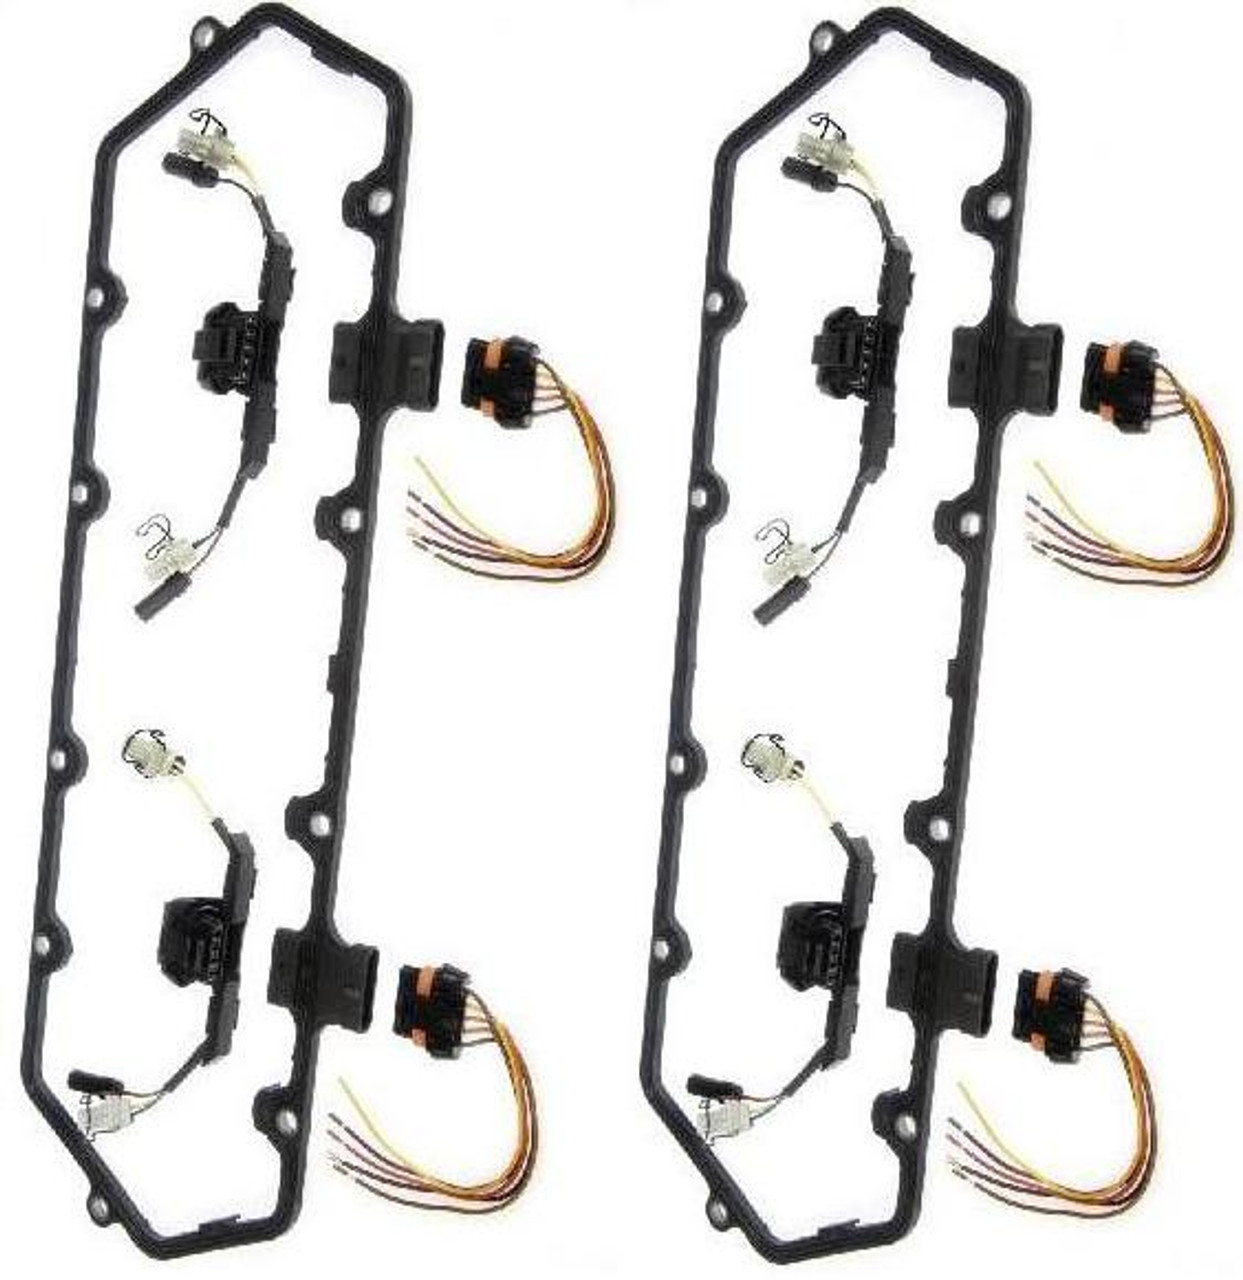 dorman 94 97 dual valve cover gasket kit w fuel injector wiring harnesses 7 3 [ 1243 x 1280 Pixel ]